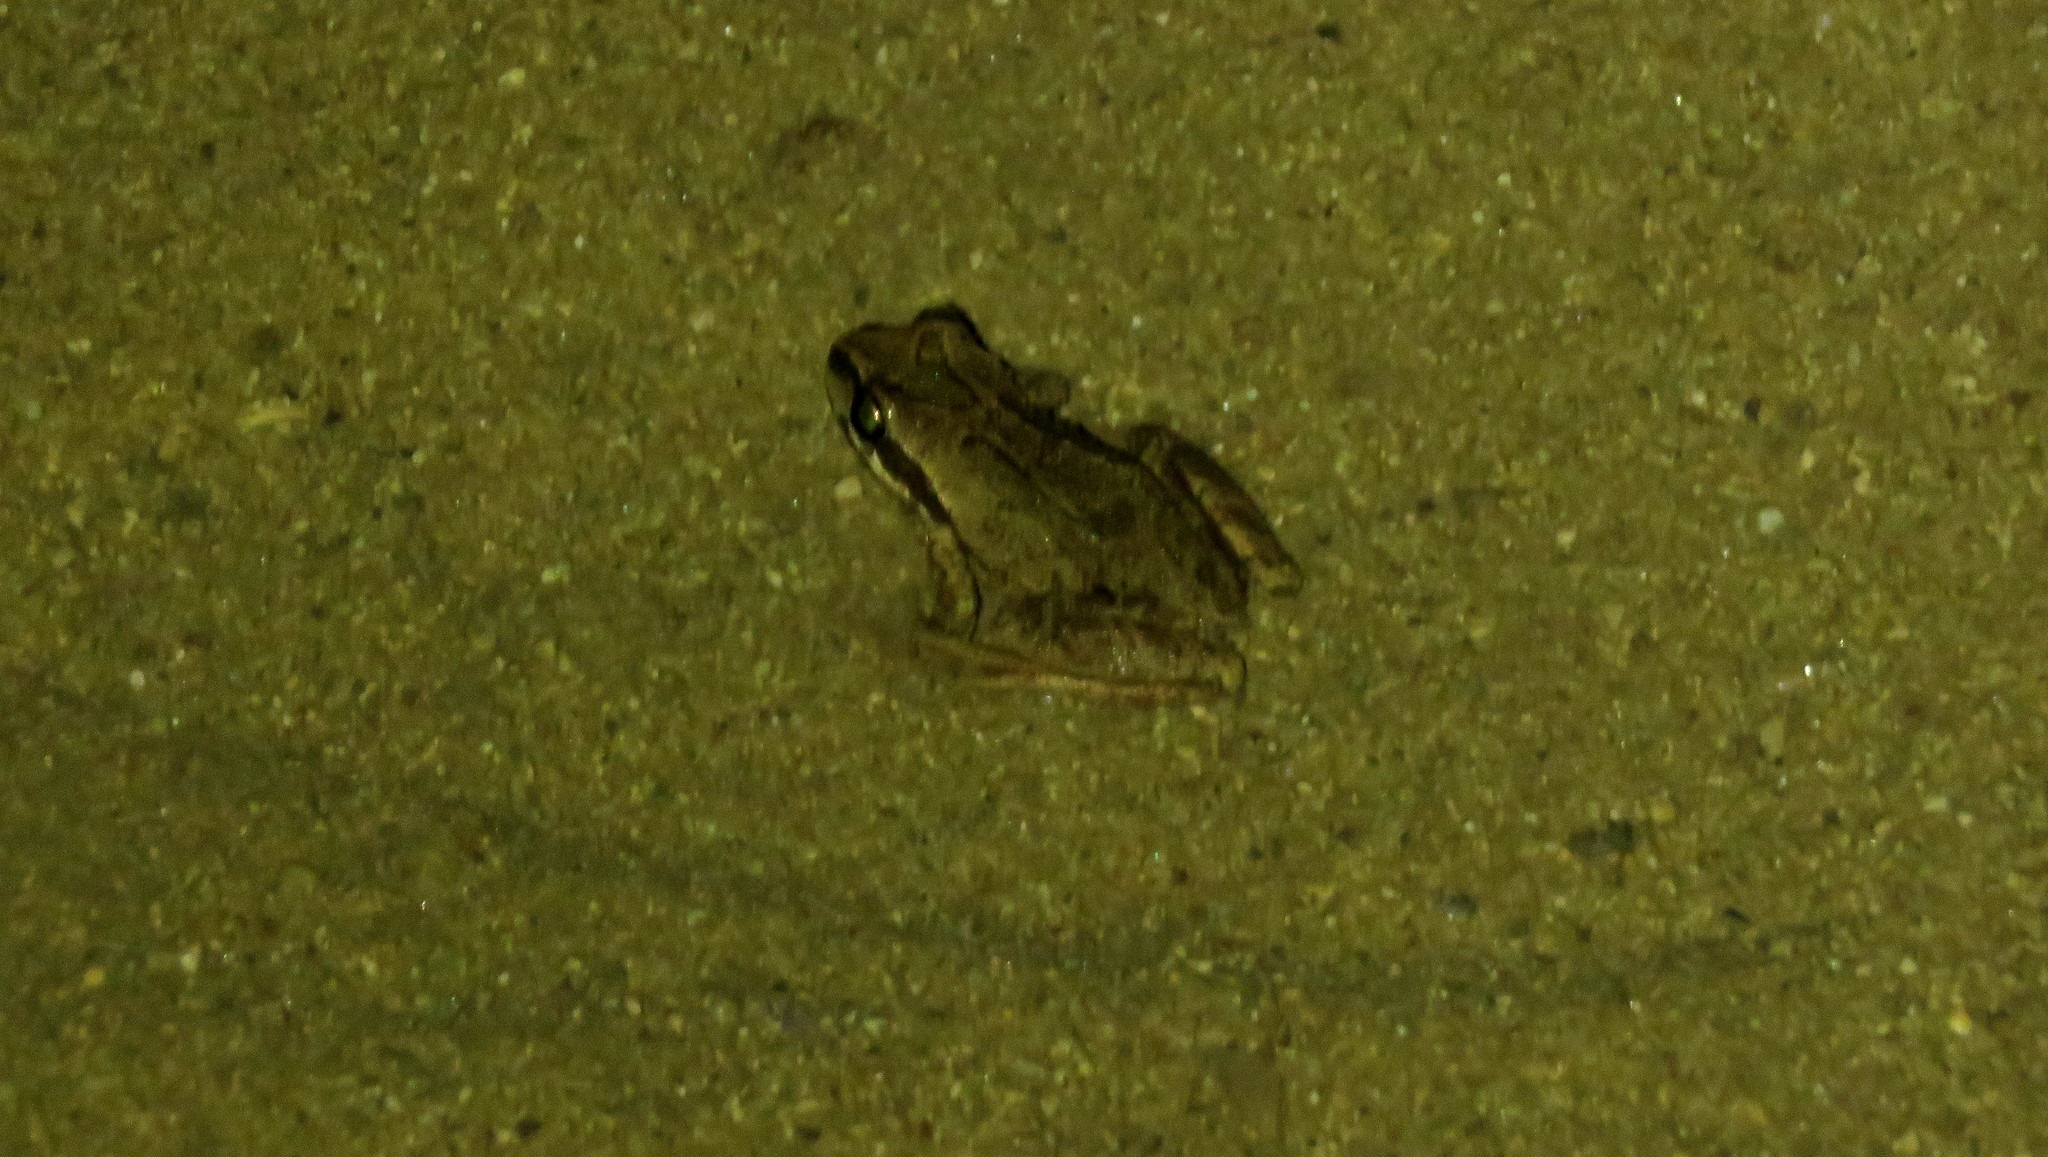 Ballona Baja Chorus Frog beginning a journey in the night leaving the safety of the frog pond at Ballona | Photo by Jonathan Coffin